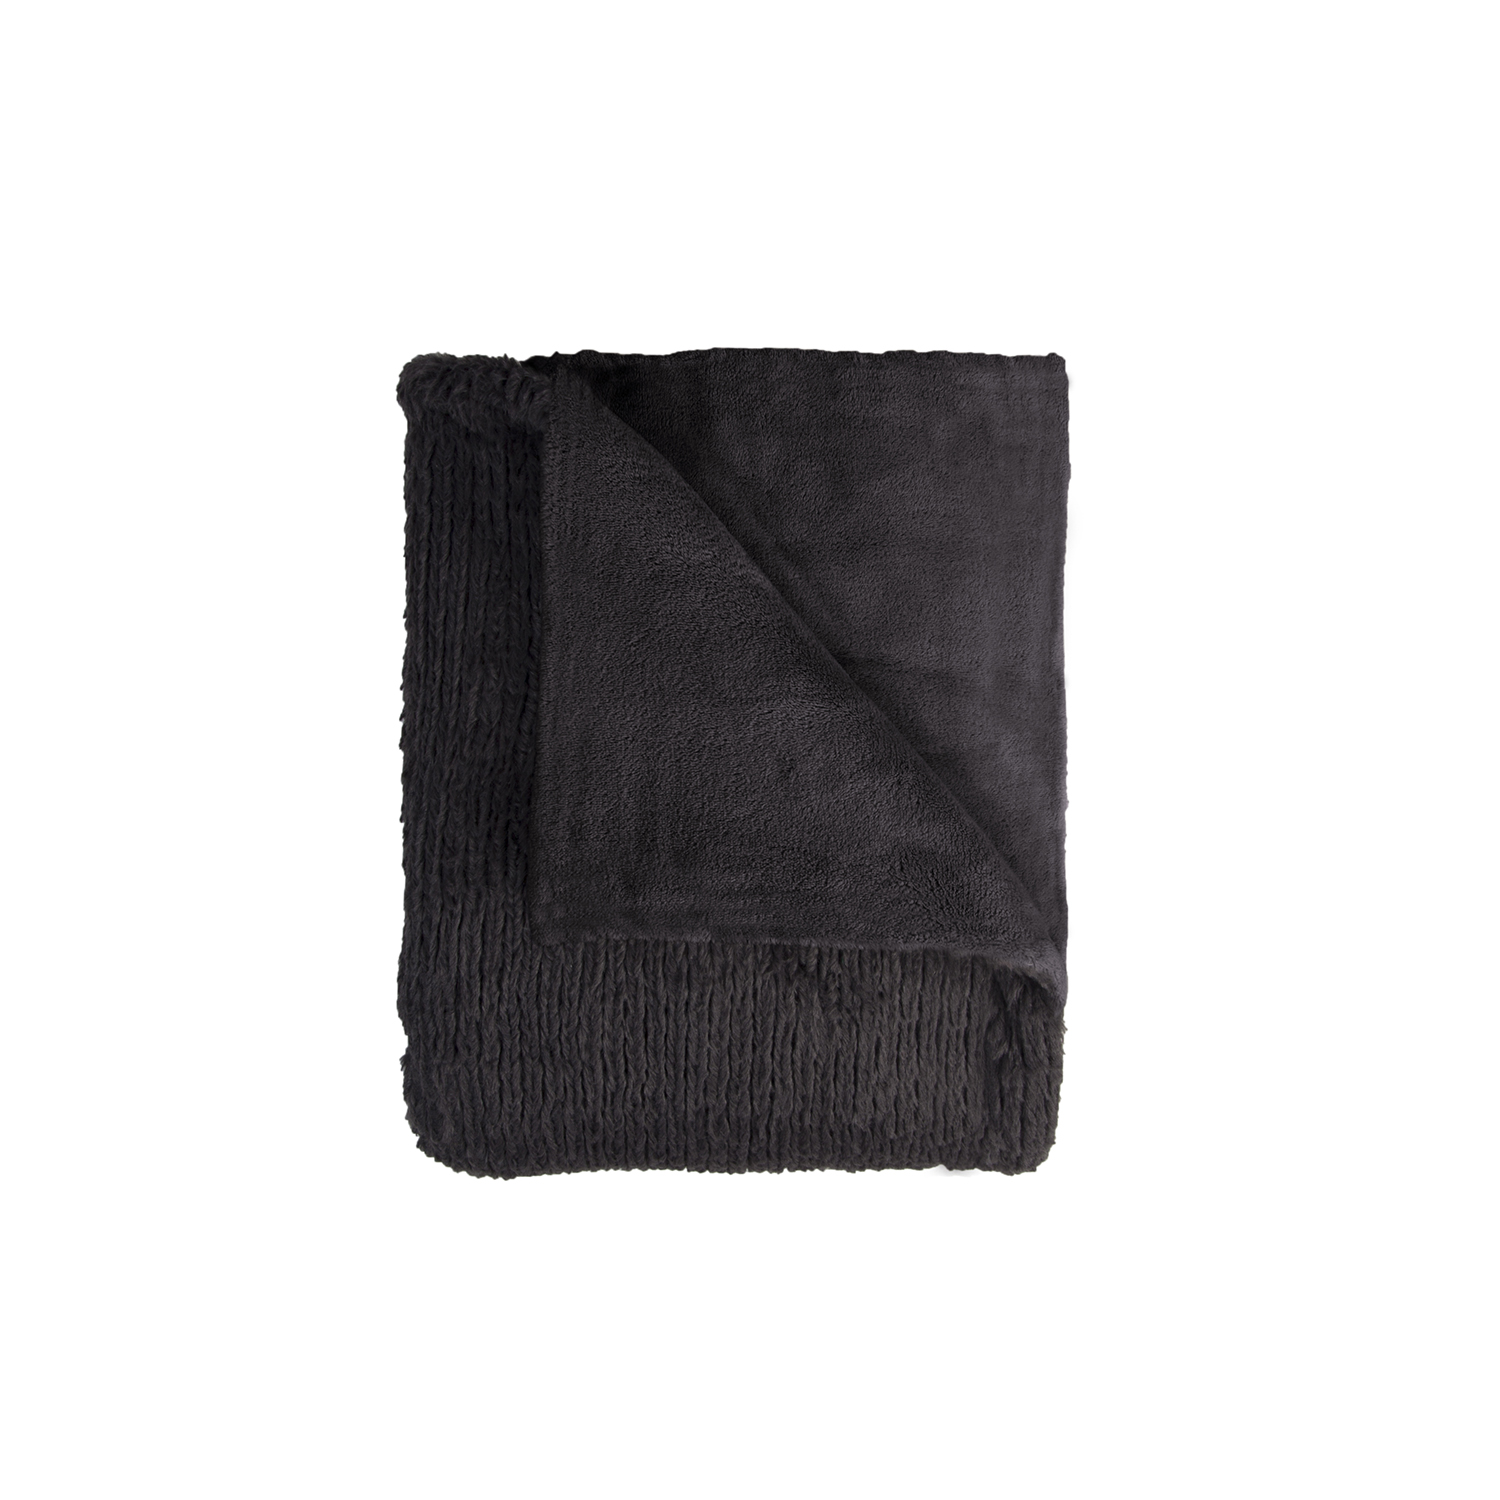 Image of Mistral Pullover Black Fuzzy Throw, Black